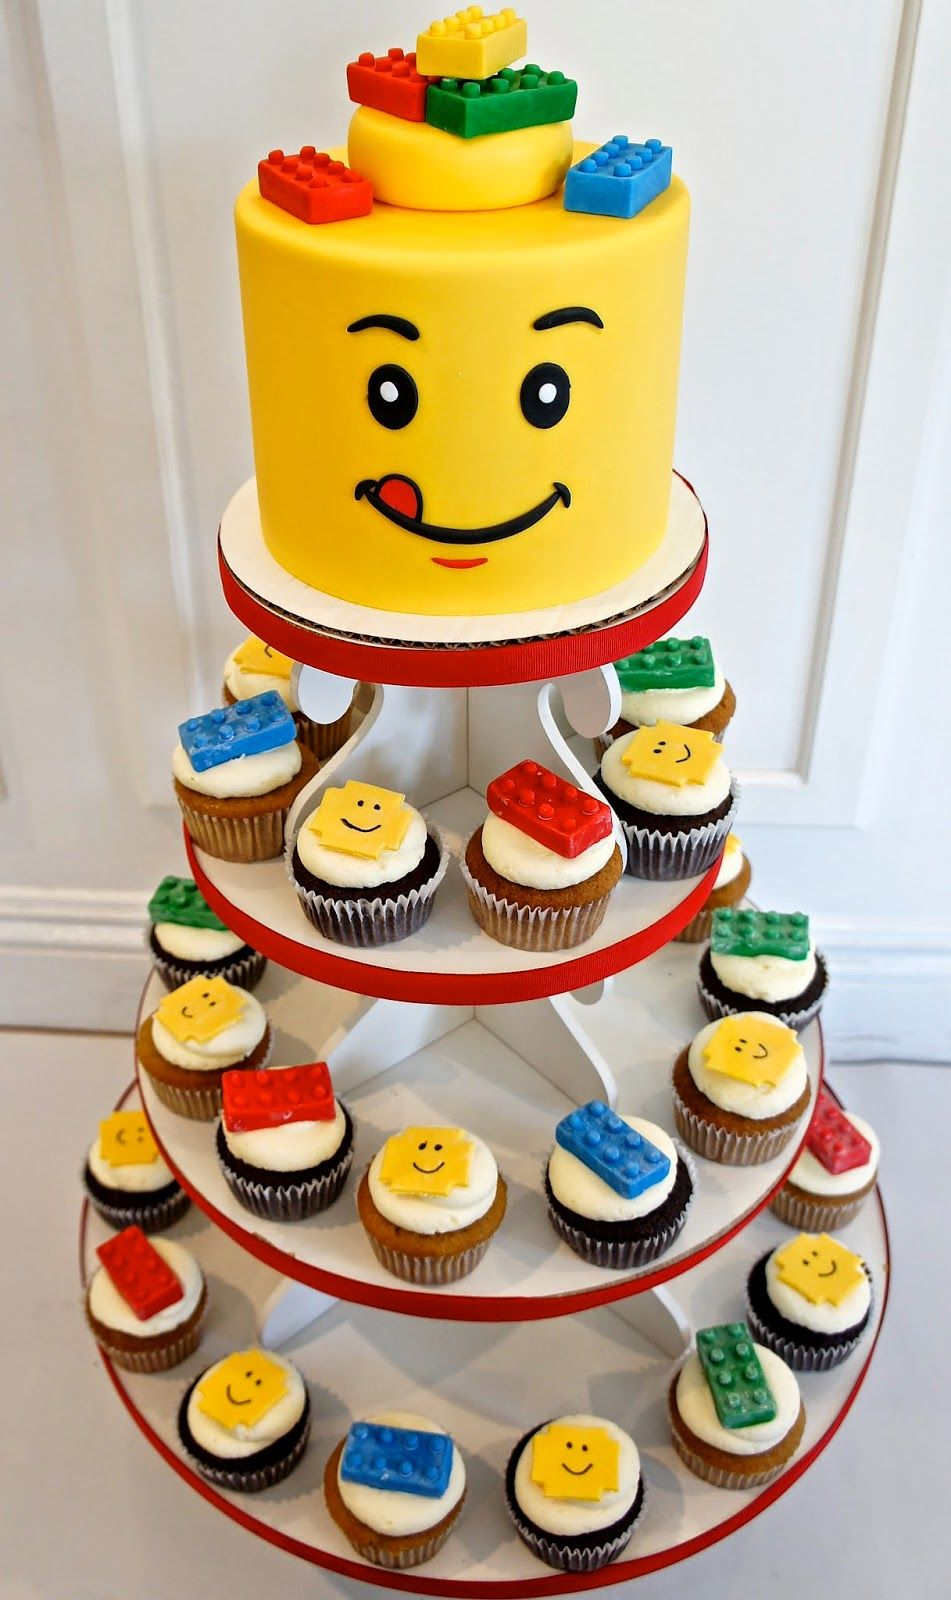 Lego Cake Cupcakes By Half Baked Co Davis 3rd Birthday Party